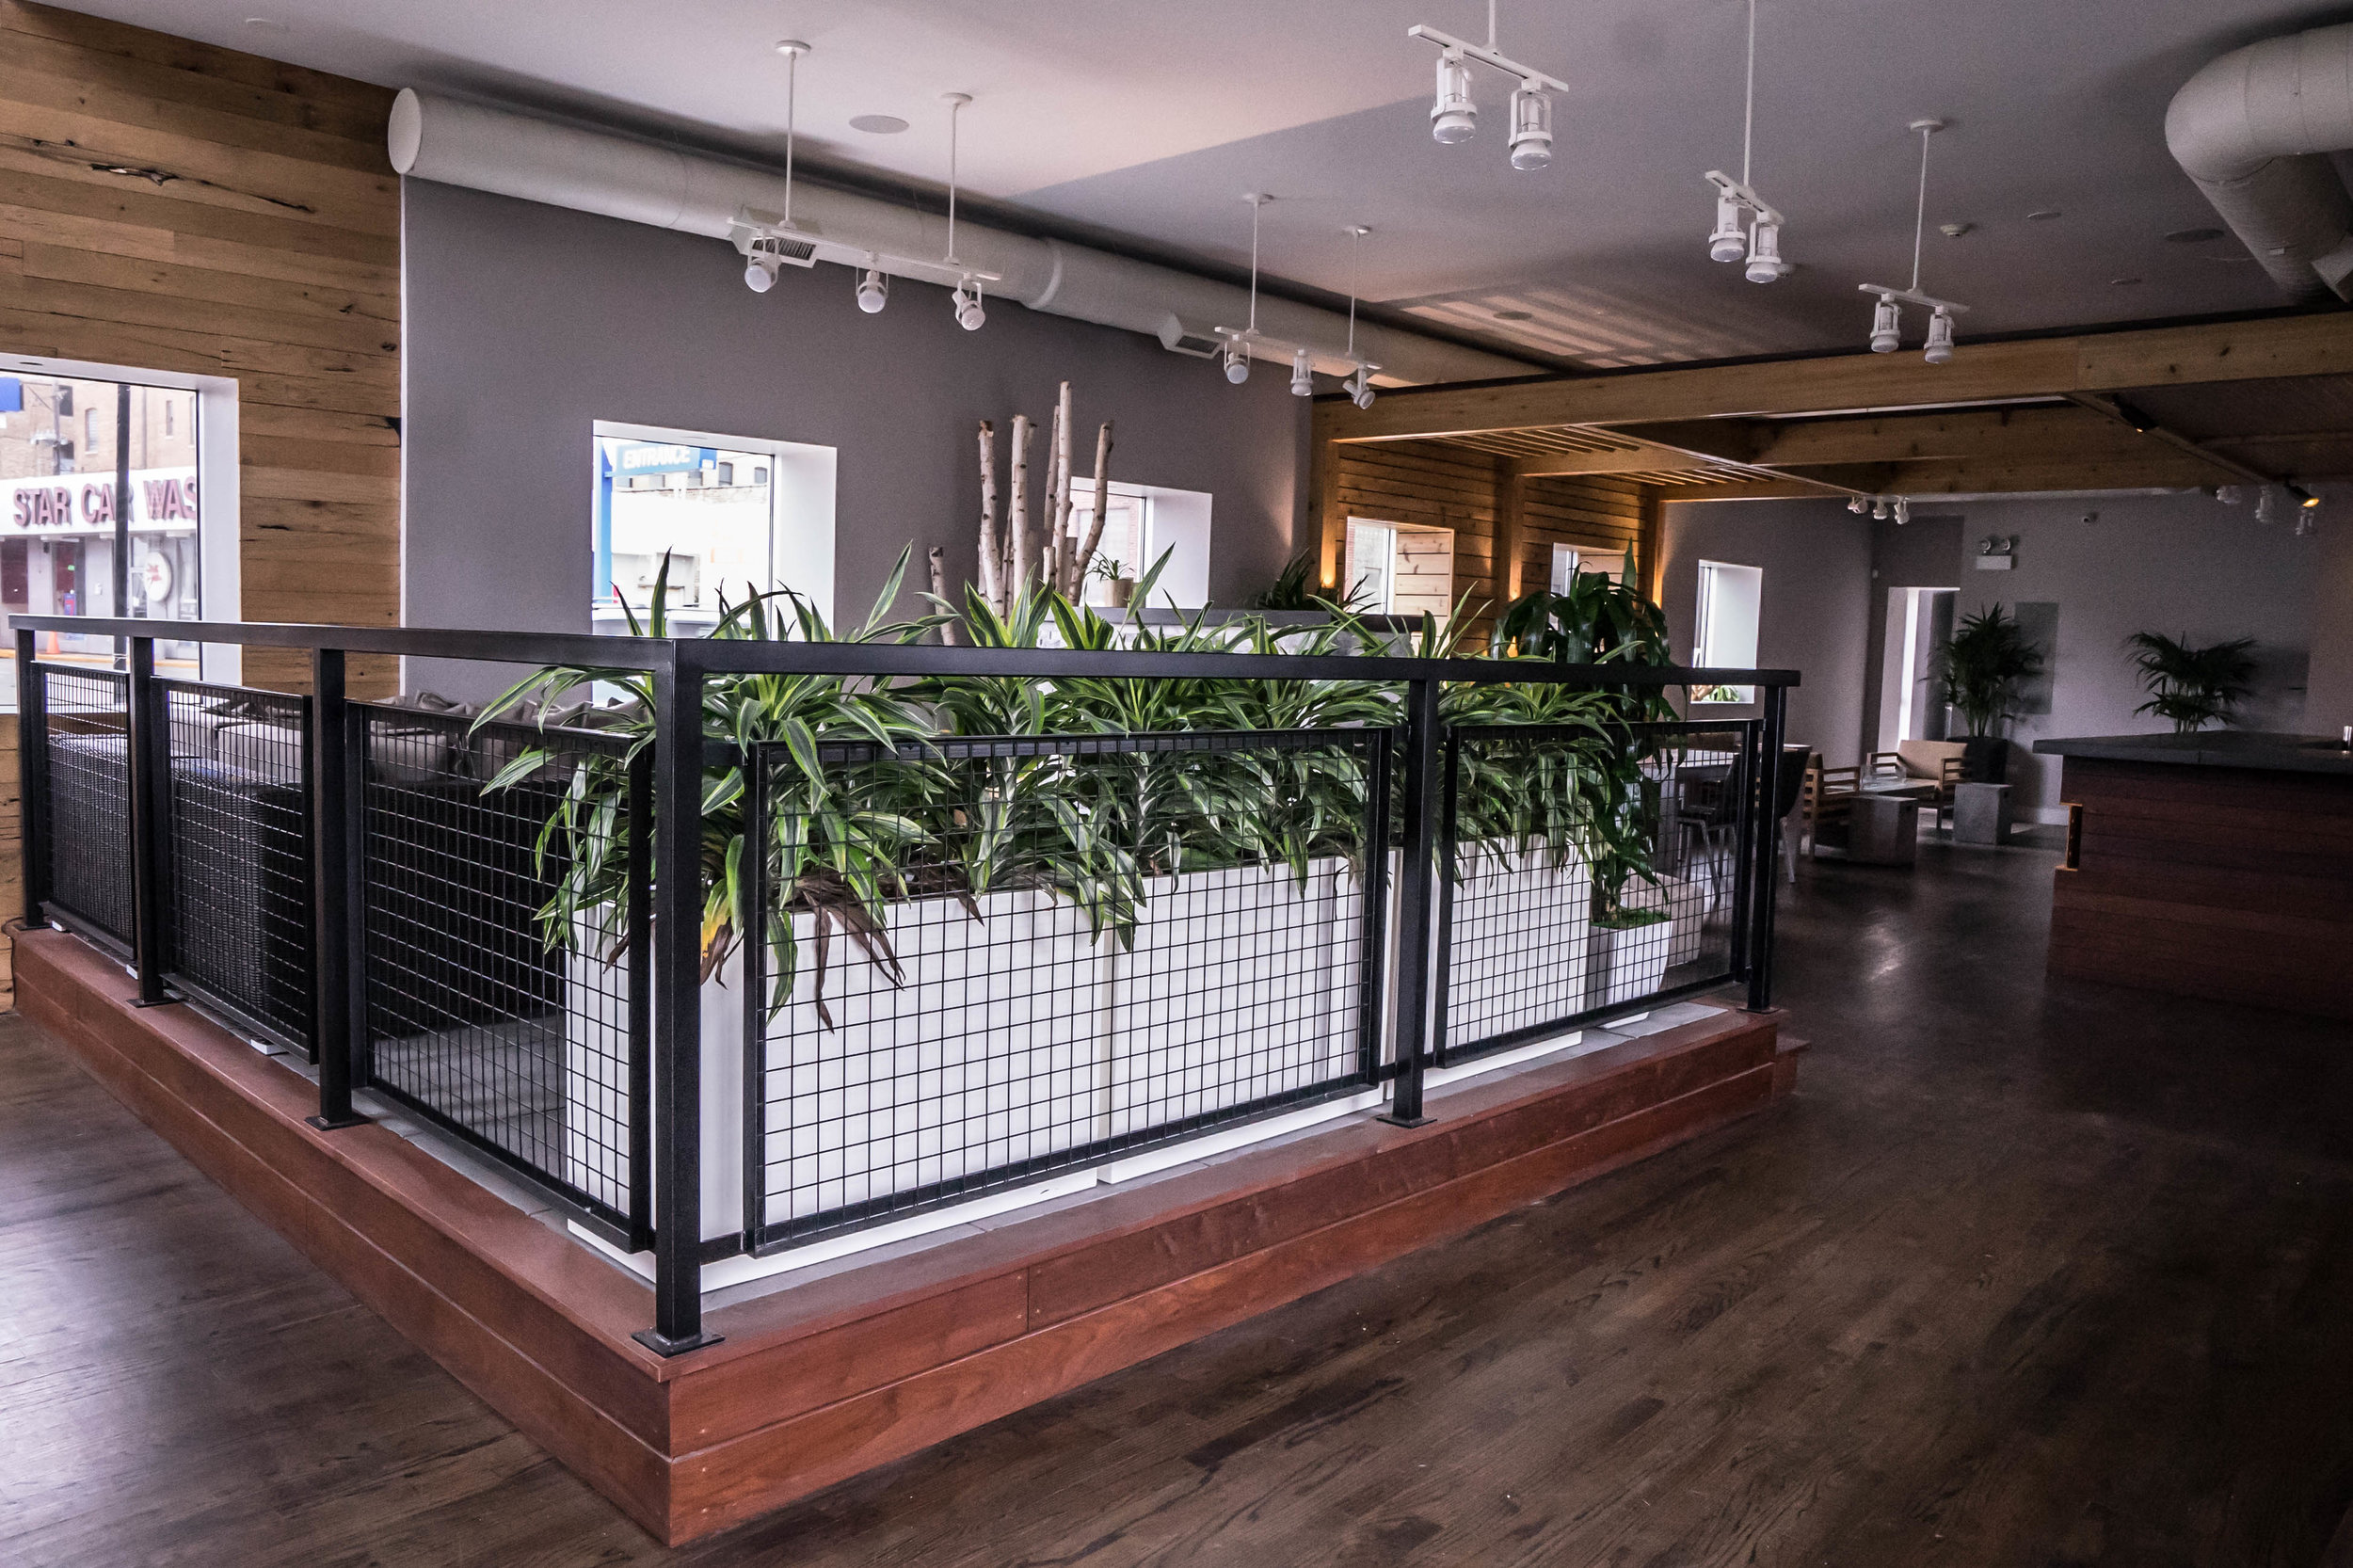 As you enter the office, you walk into our showroom which features a slightly raised 'deck' with railings, plantings, tiles, furniture, and a stone fireplace (behind the plantings).